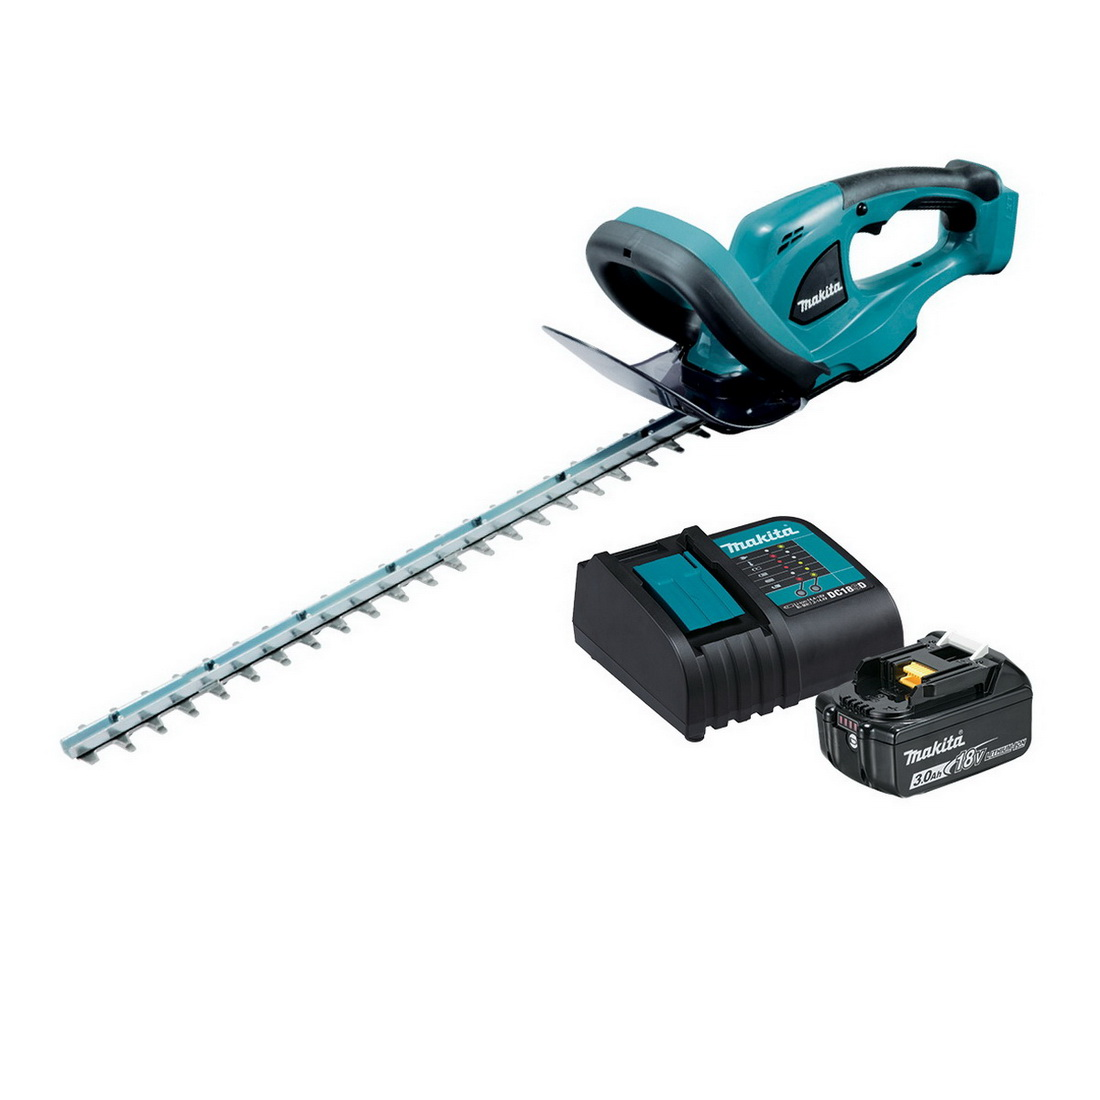 Lxt Hedge Trimmer Kit 18V 3Ah 520mm Blade Length